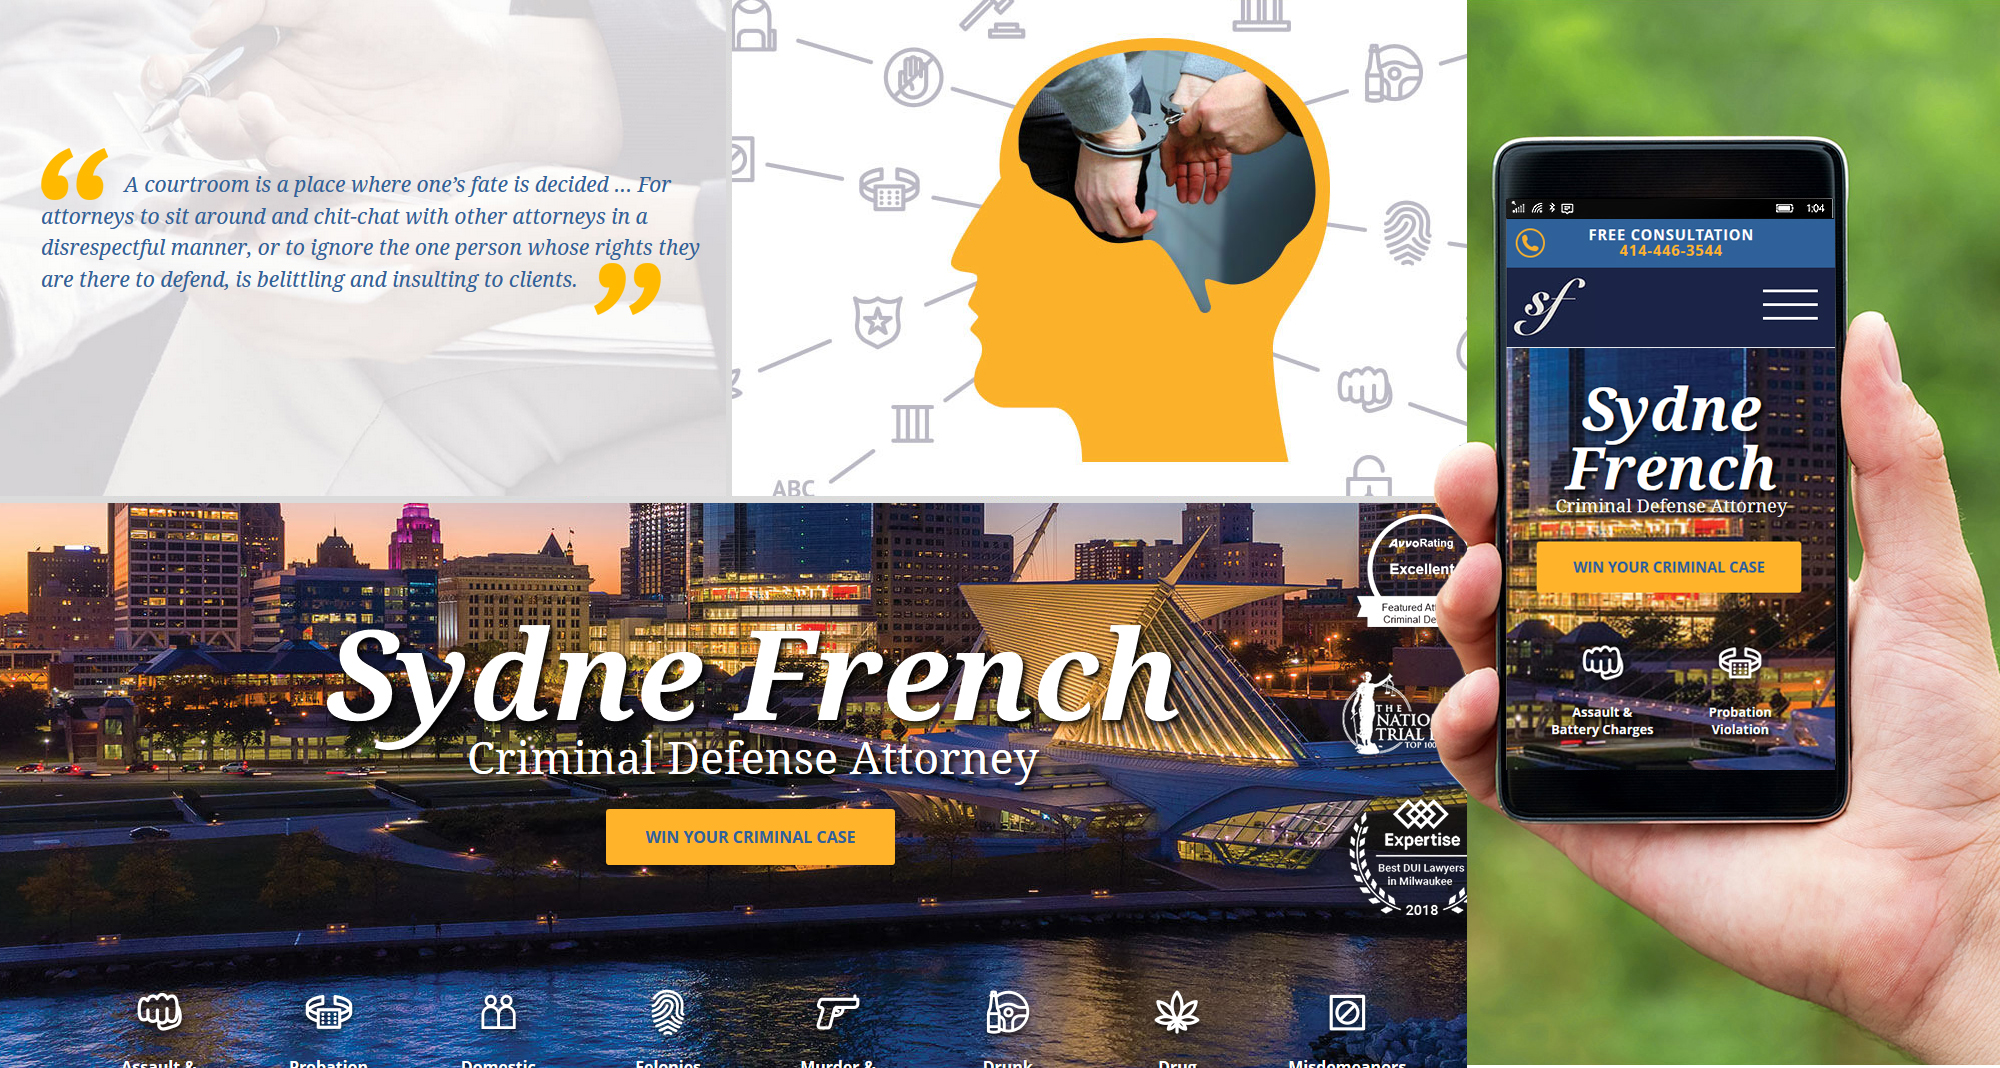 Milwaukee web marketing for The Law Offices of Sydne French